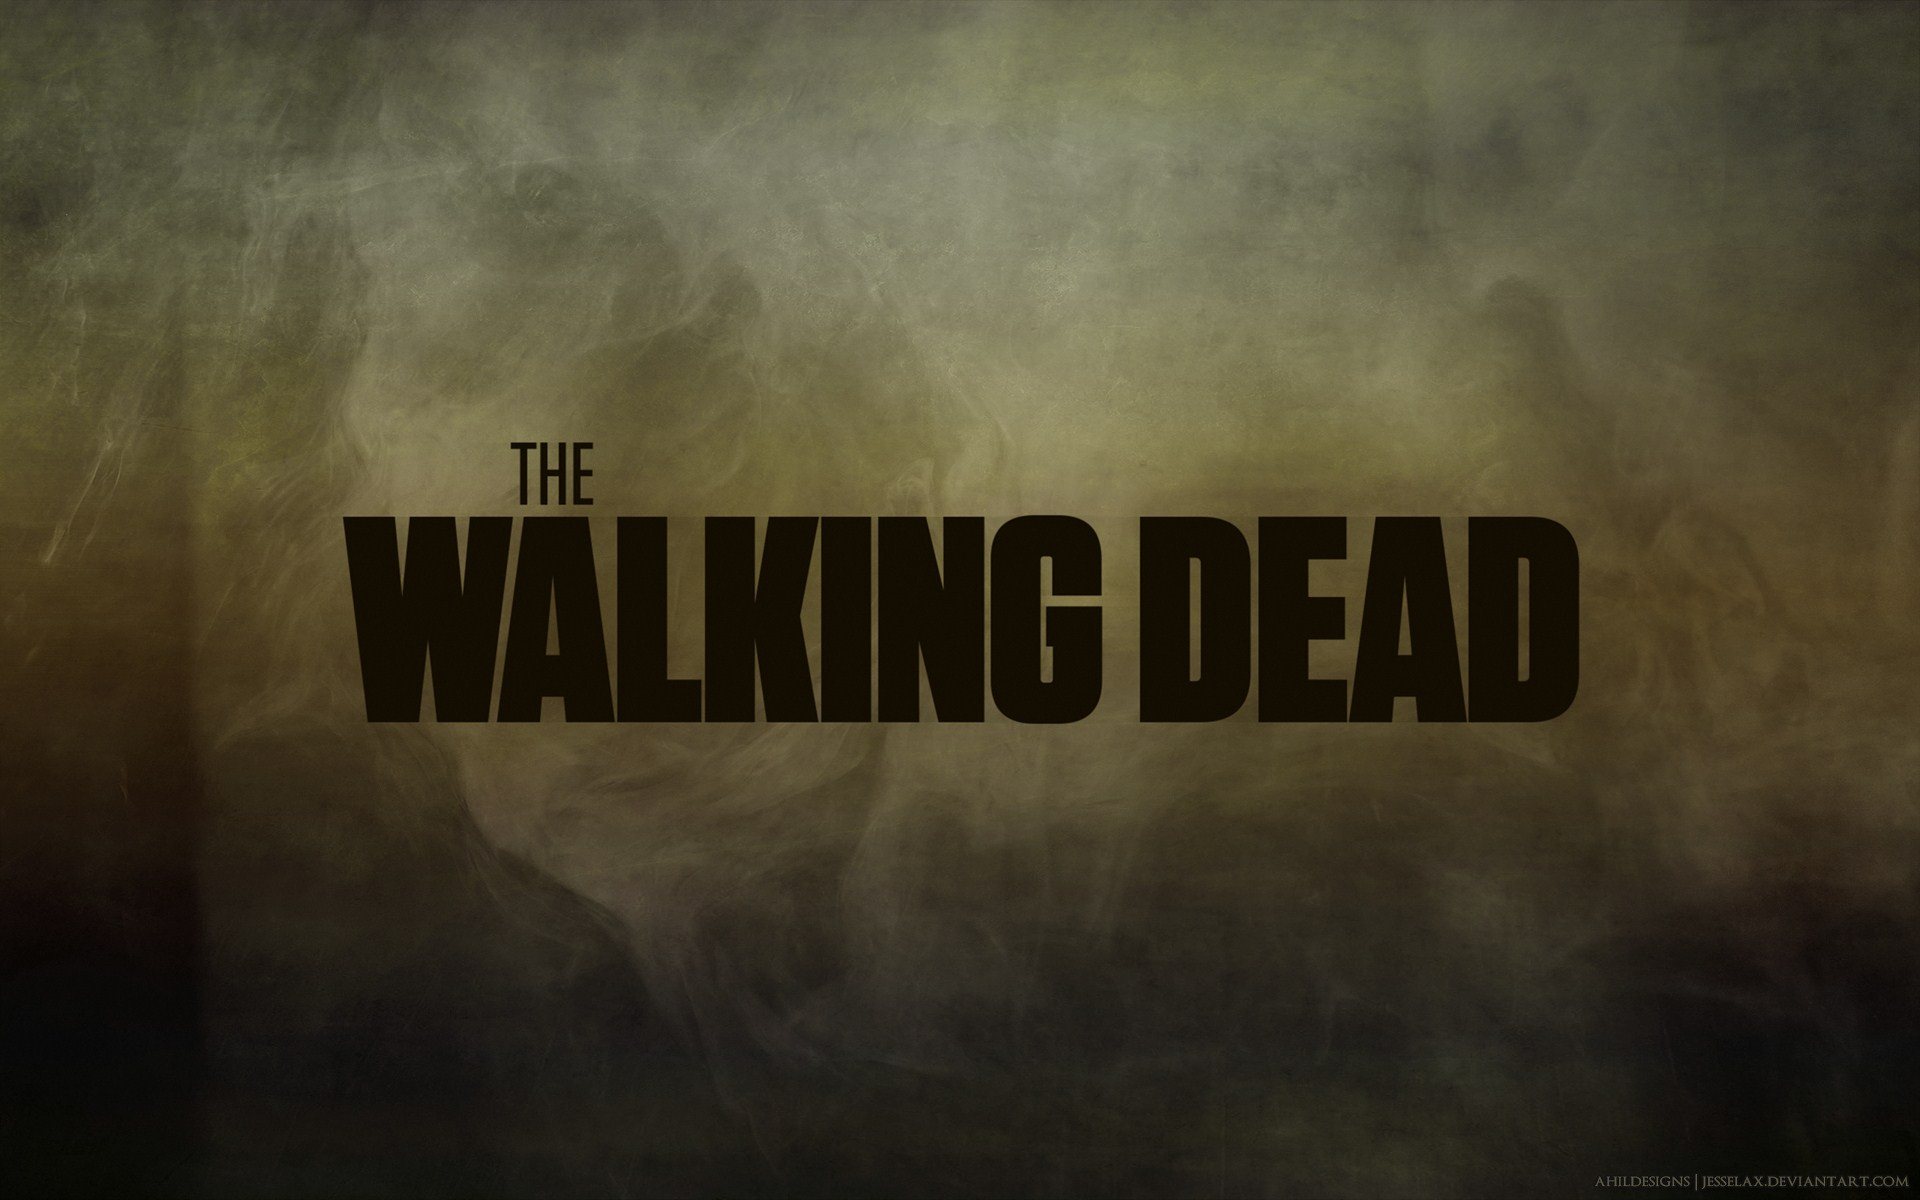 the walking dead poster art wallpaper | 1920x1200 | #9695